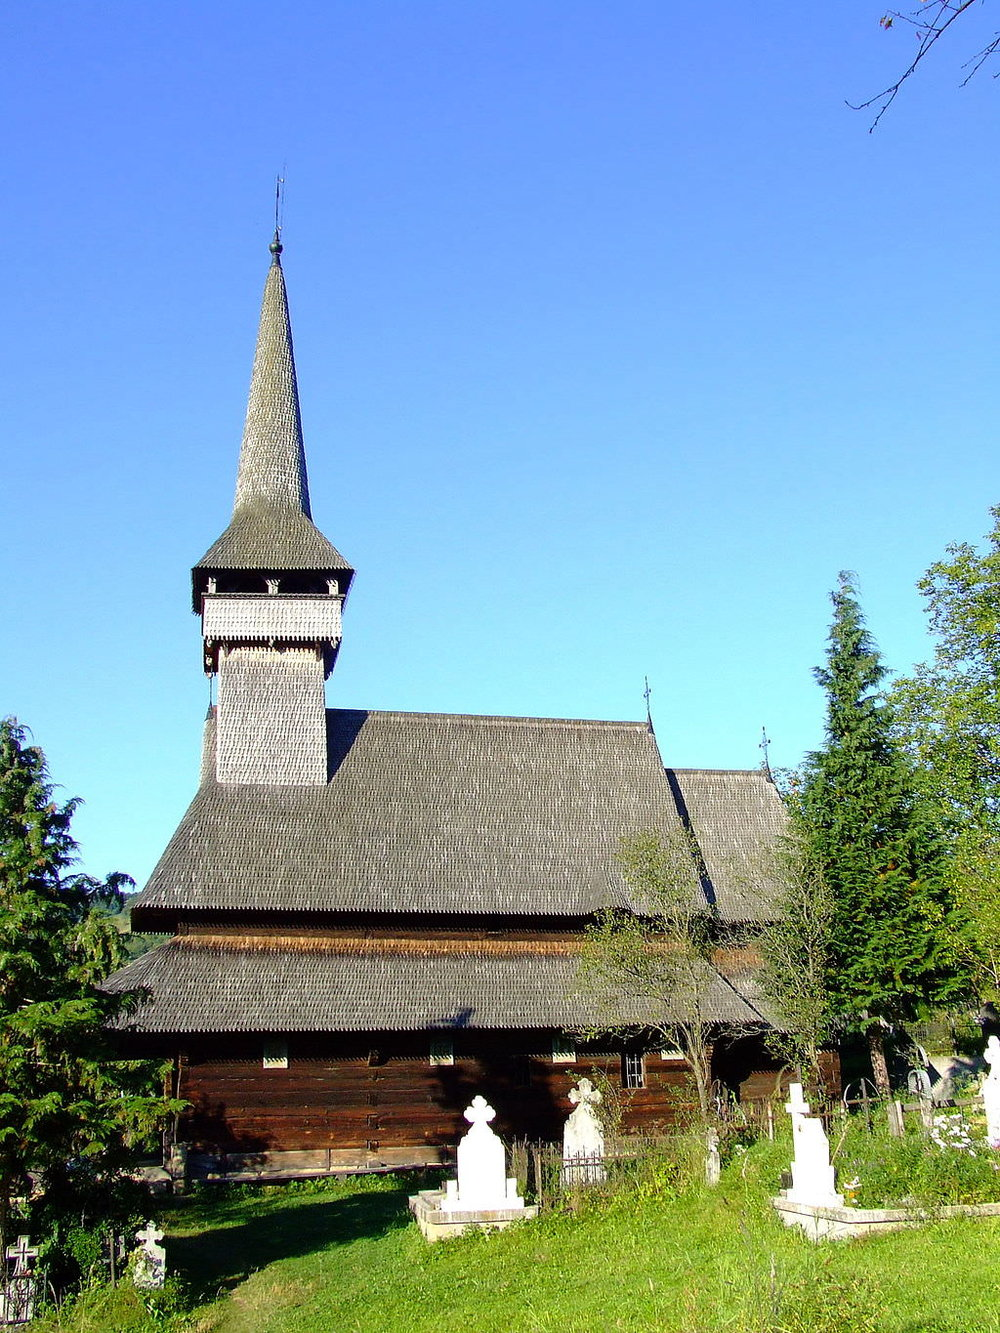 The Poienile Izei Wooden Church (copyright: creative commons)